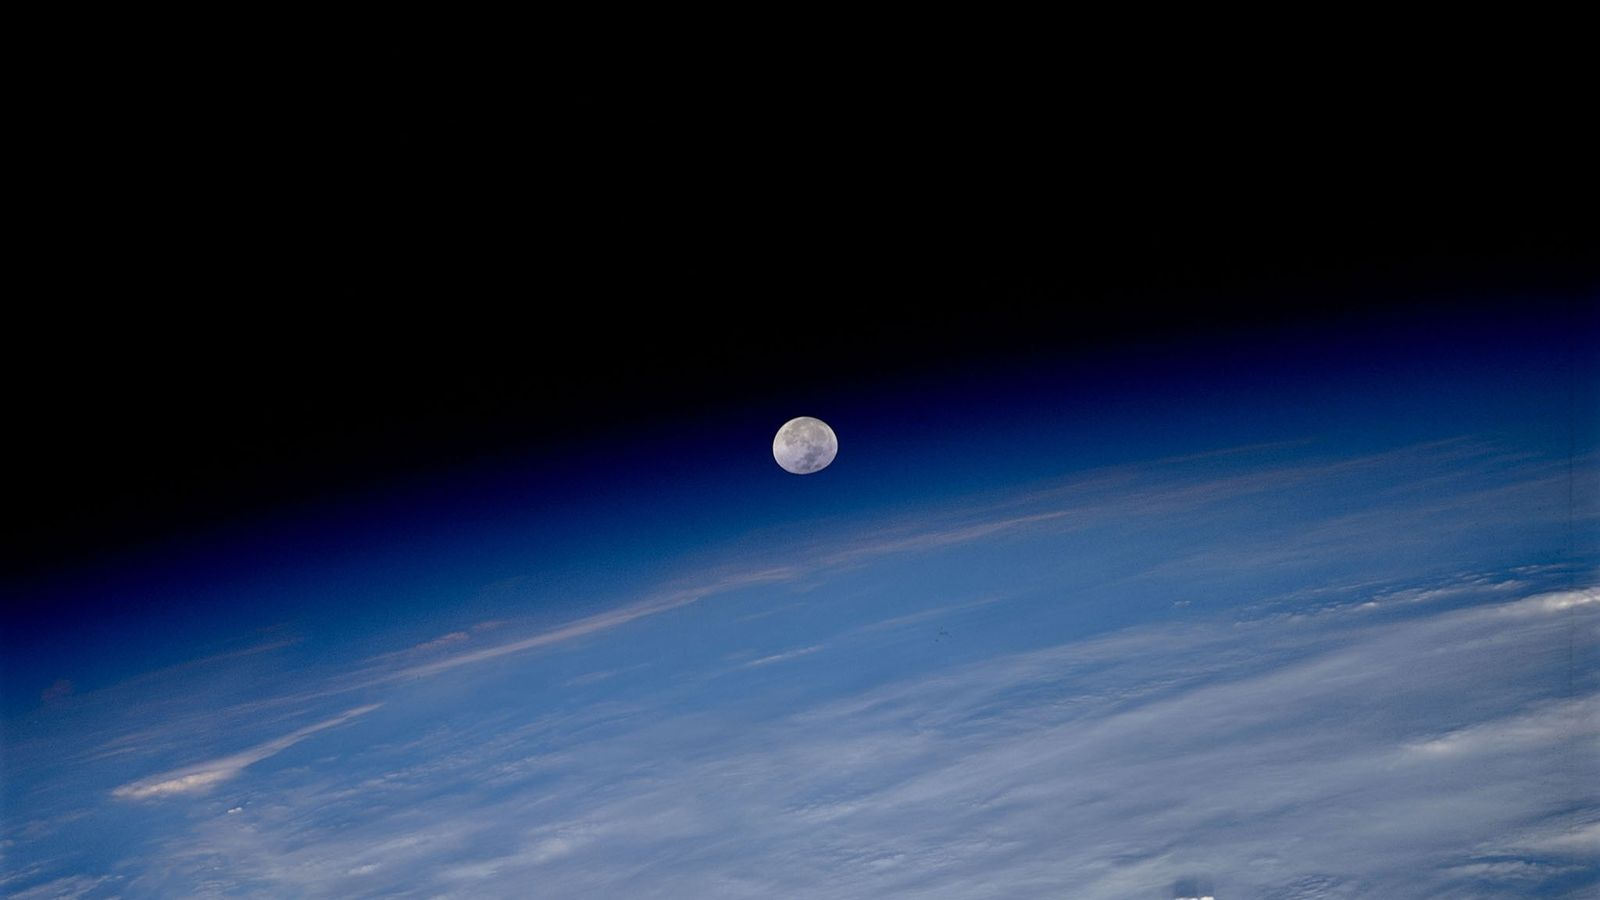 The moon seems to hang in the balance between Earth's atmosphere and the blackness of space ...